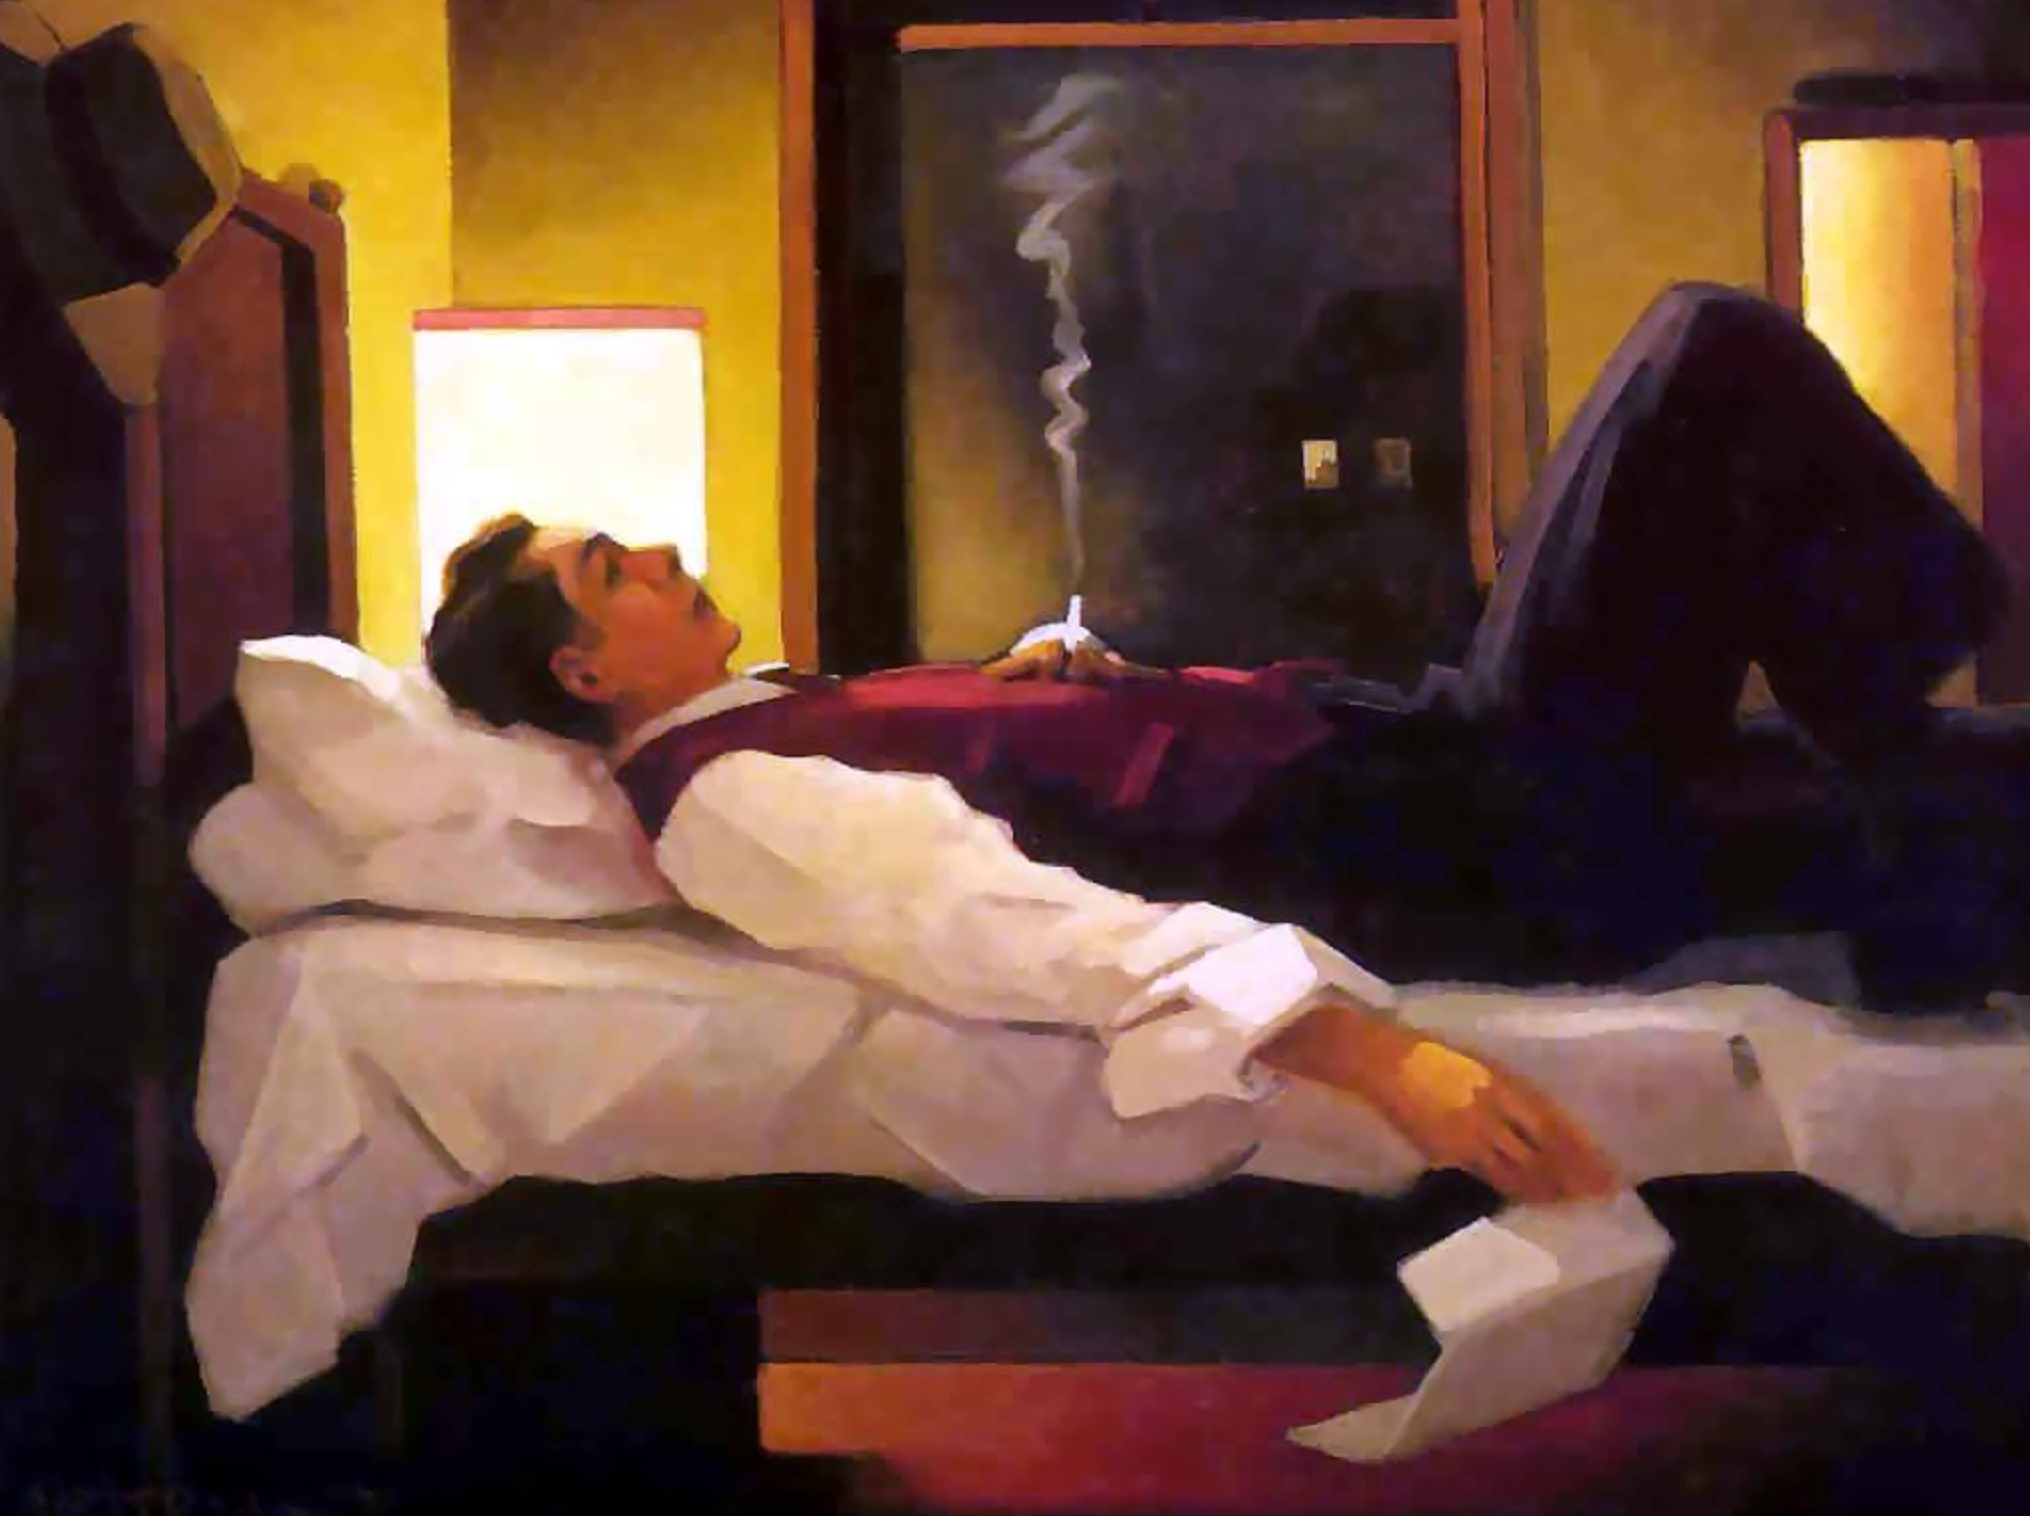 Painting by Jack Vettriano